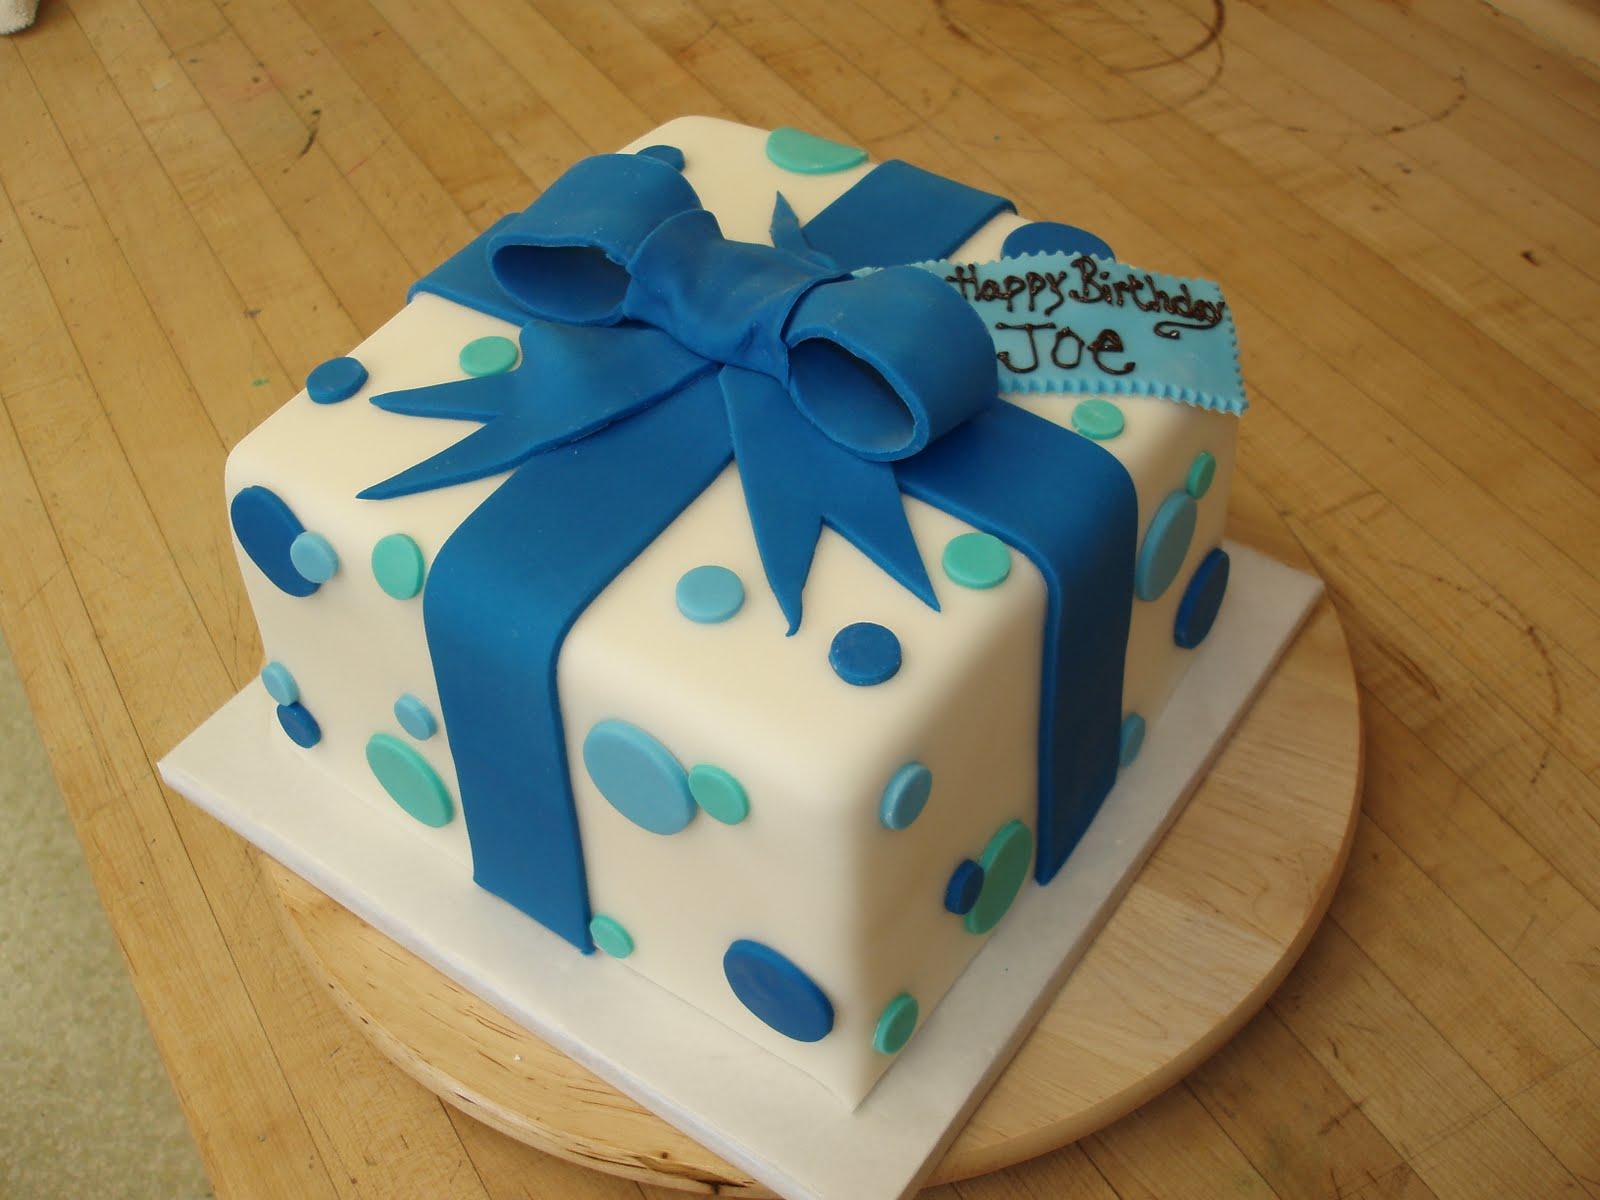 The Solvang Bakery Gingerbread Company Present Birthday Cake